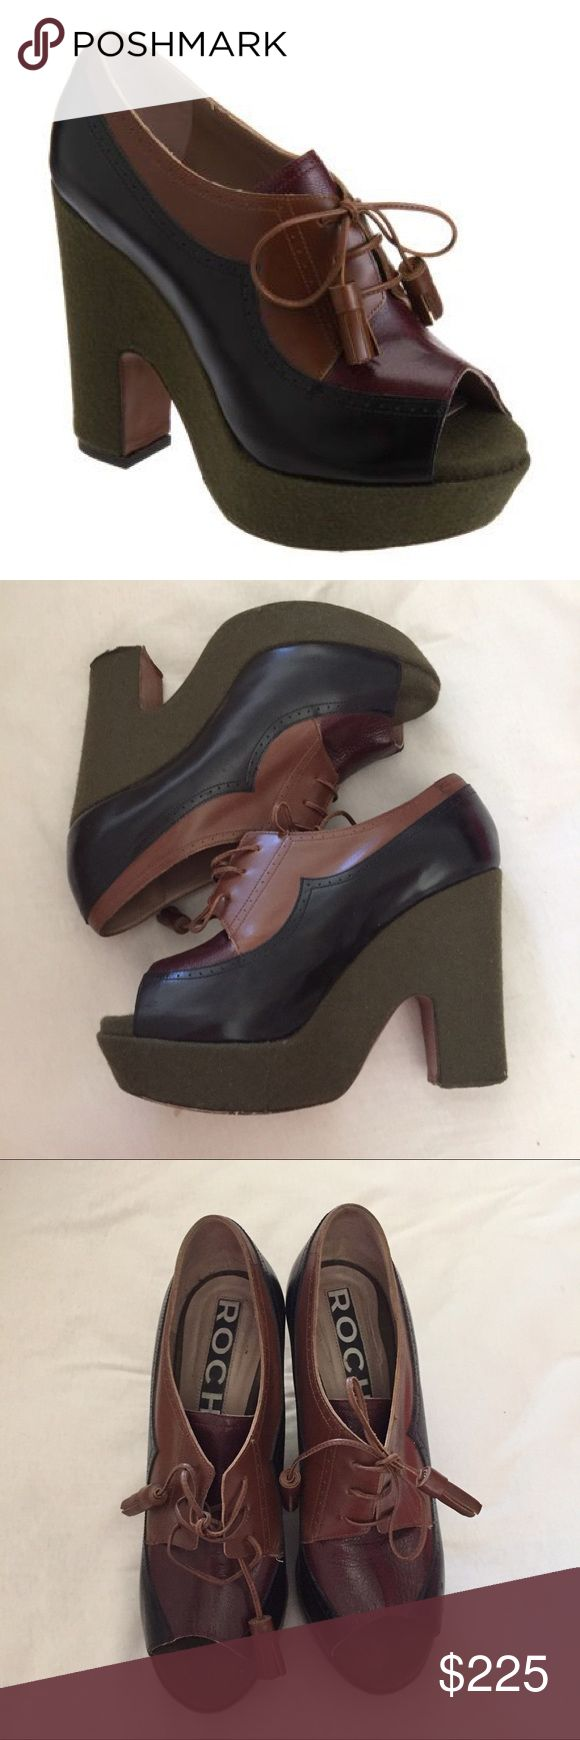 "Rochas Color Block Peep Toe Oxford Wedge Platforms This is a super cute pair of Rochas color Block oxfords. Size 39. Peep toe Lace ups. Heel 4.5"" front platform 1.5"". Great condition. Rochas  Shoes Platforms"